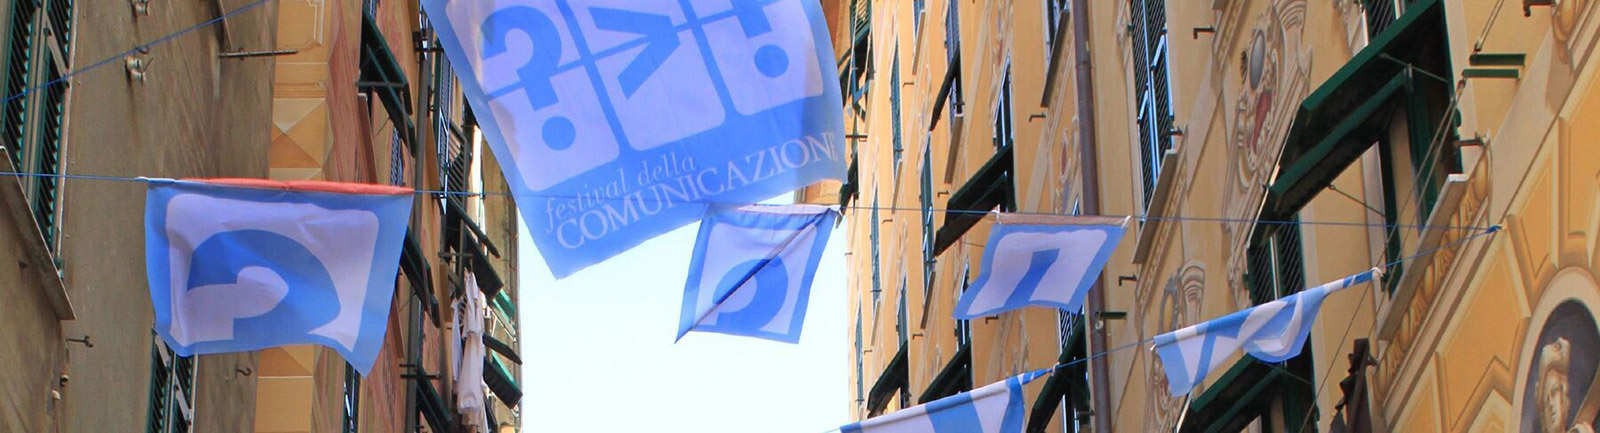 COMMUNICATION FESTIVAL 2020 – CAMOGLI, 10TH -11TH-12TH -13TH SEPTEMBER